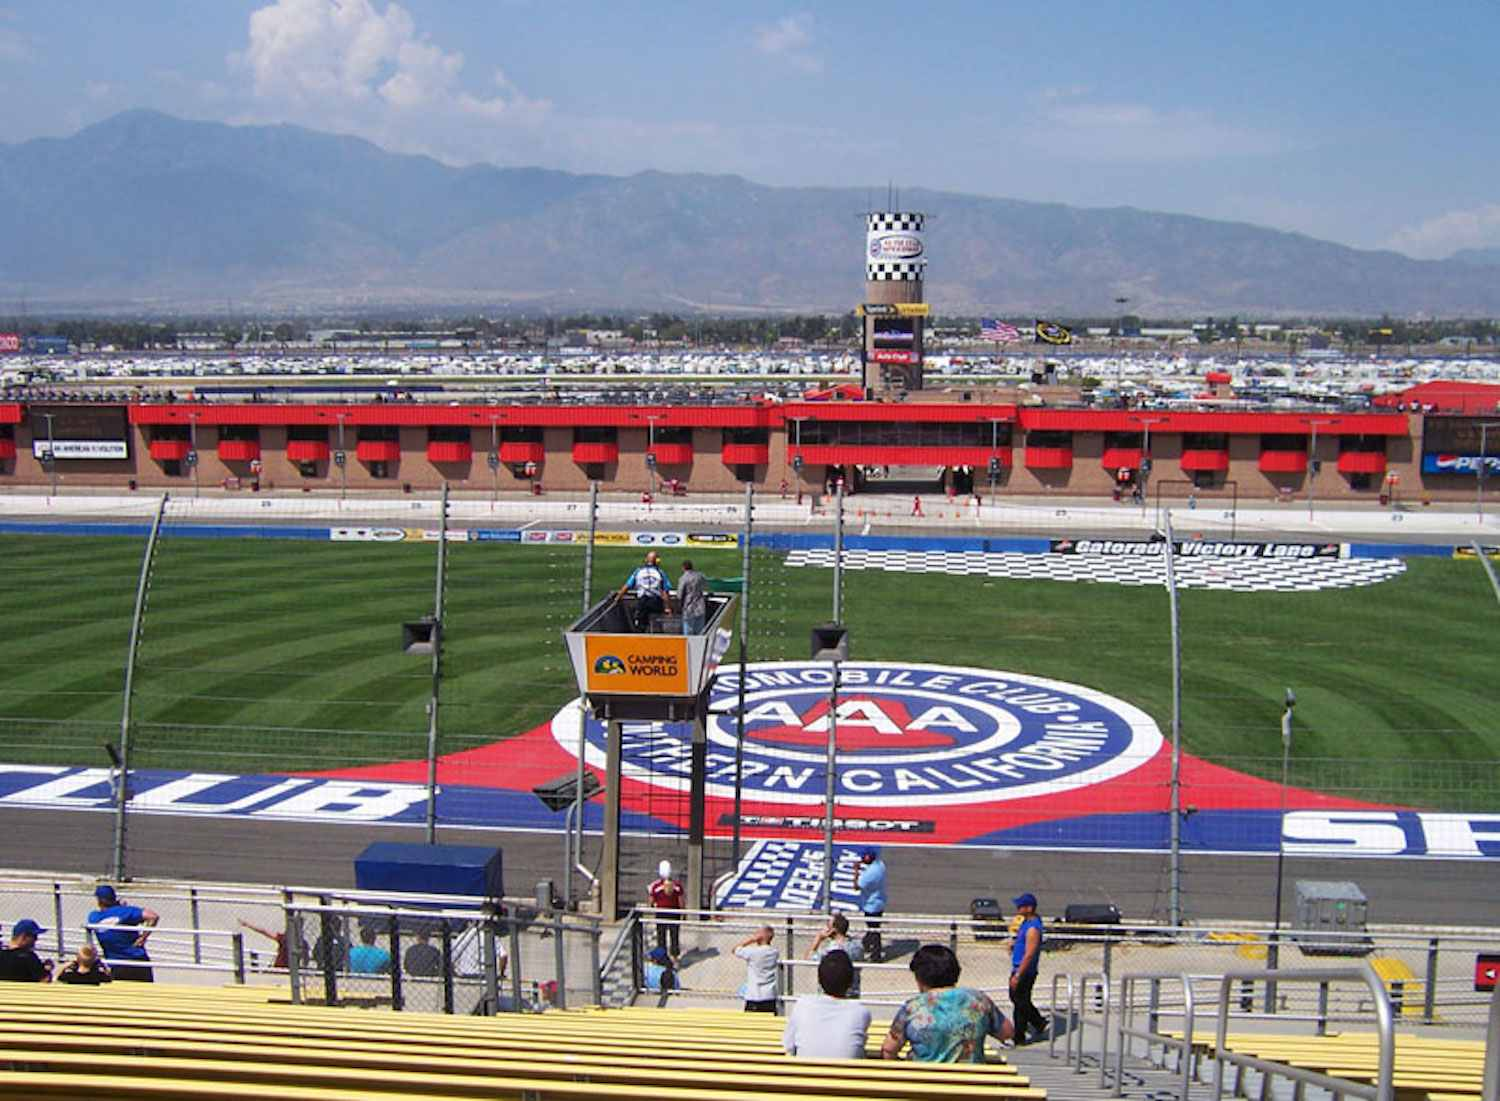 View of Auto Club Speedway from center of the grandstand.